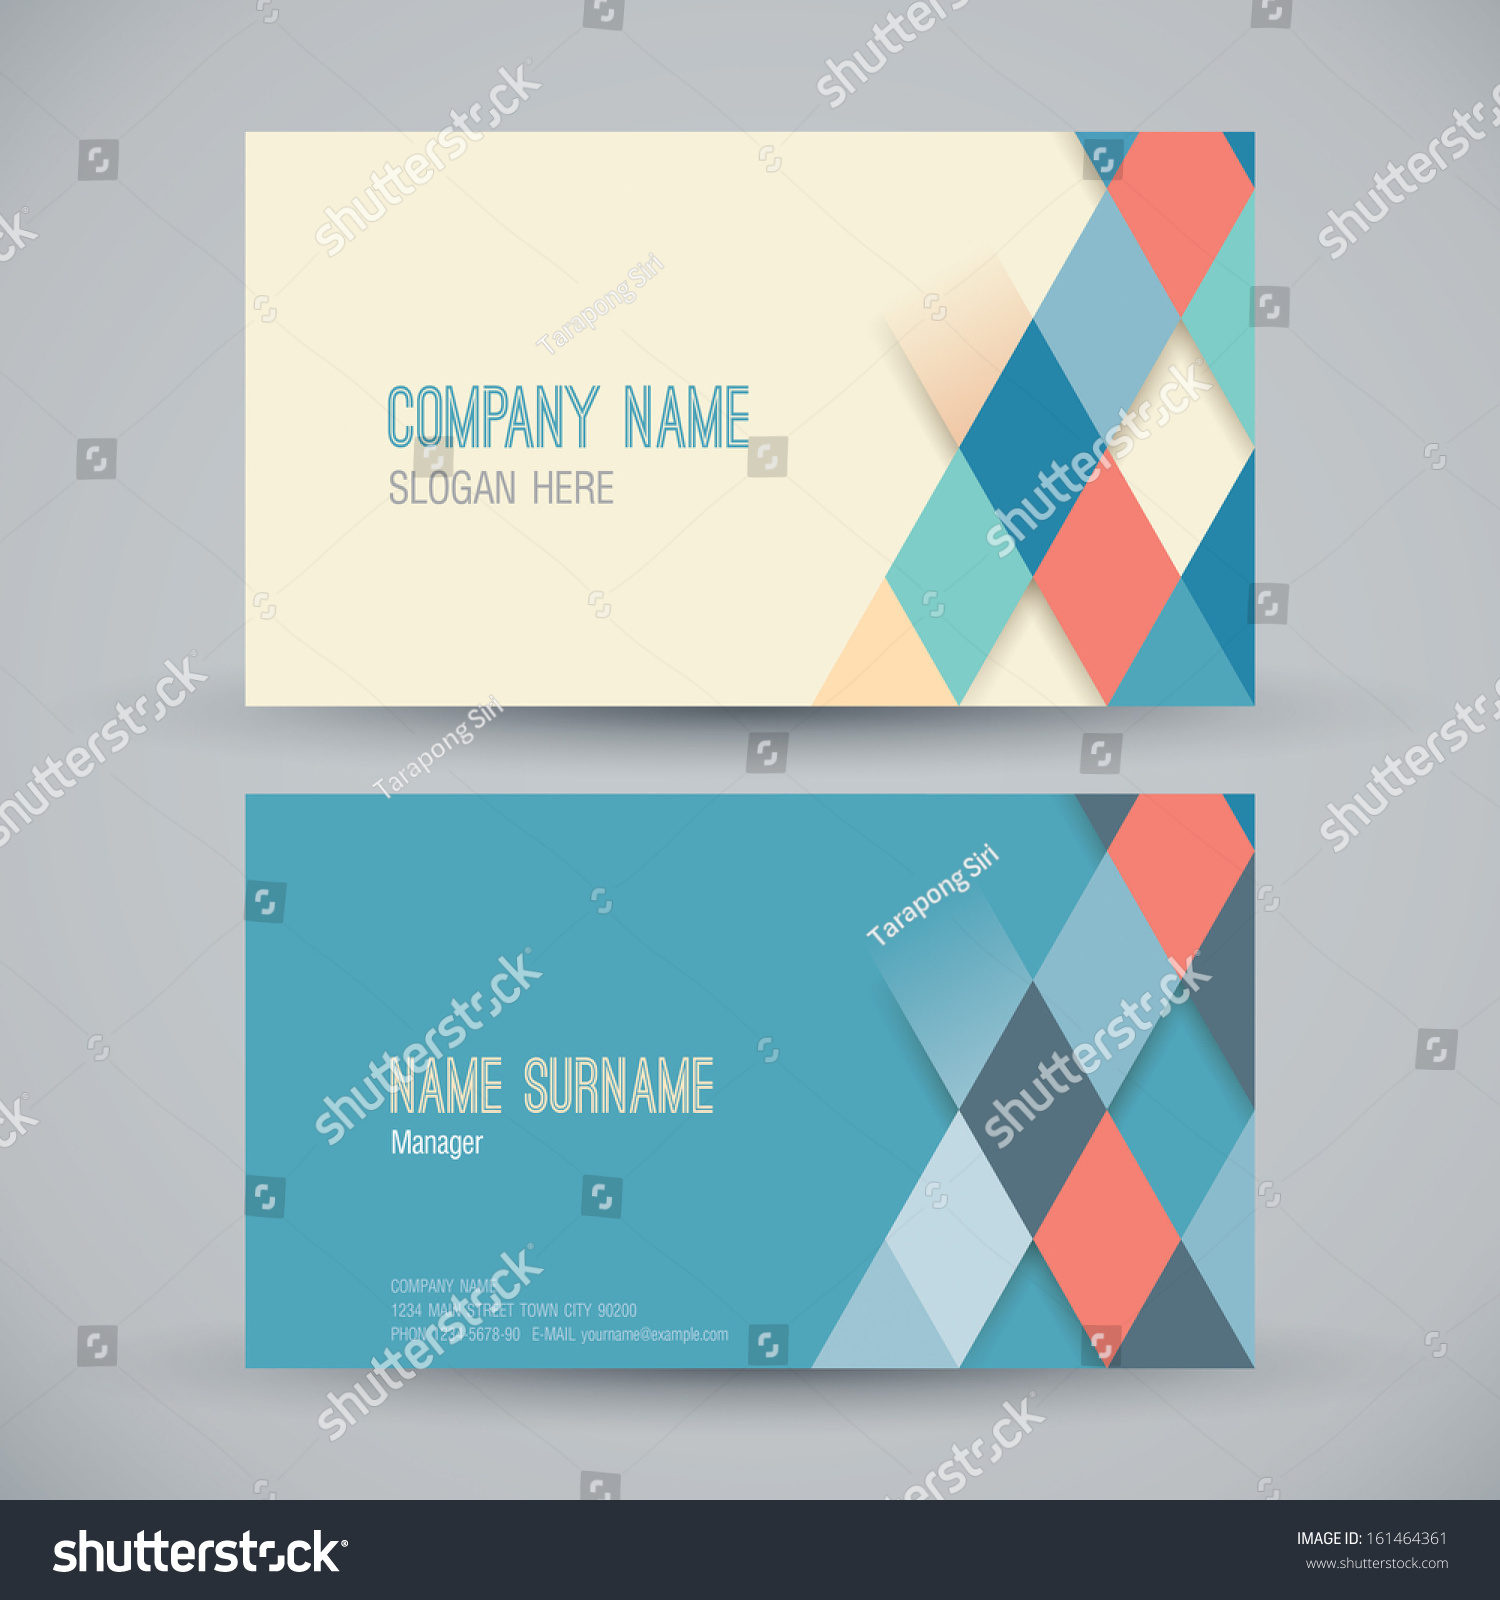 Name Card Design Template. Business Card Vector